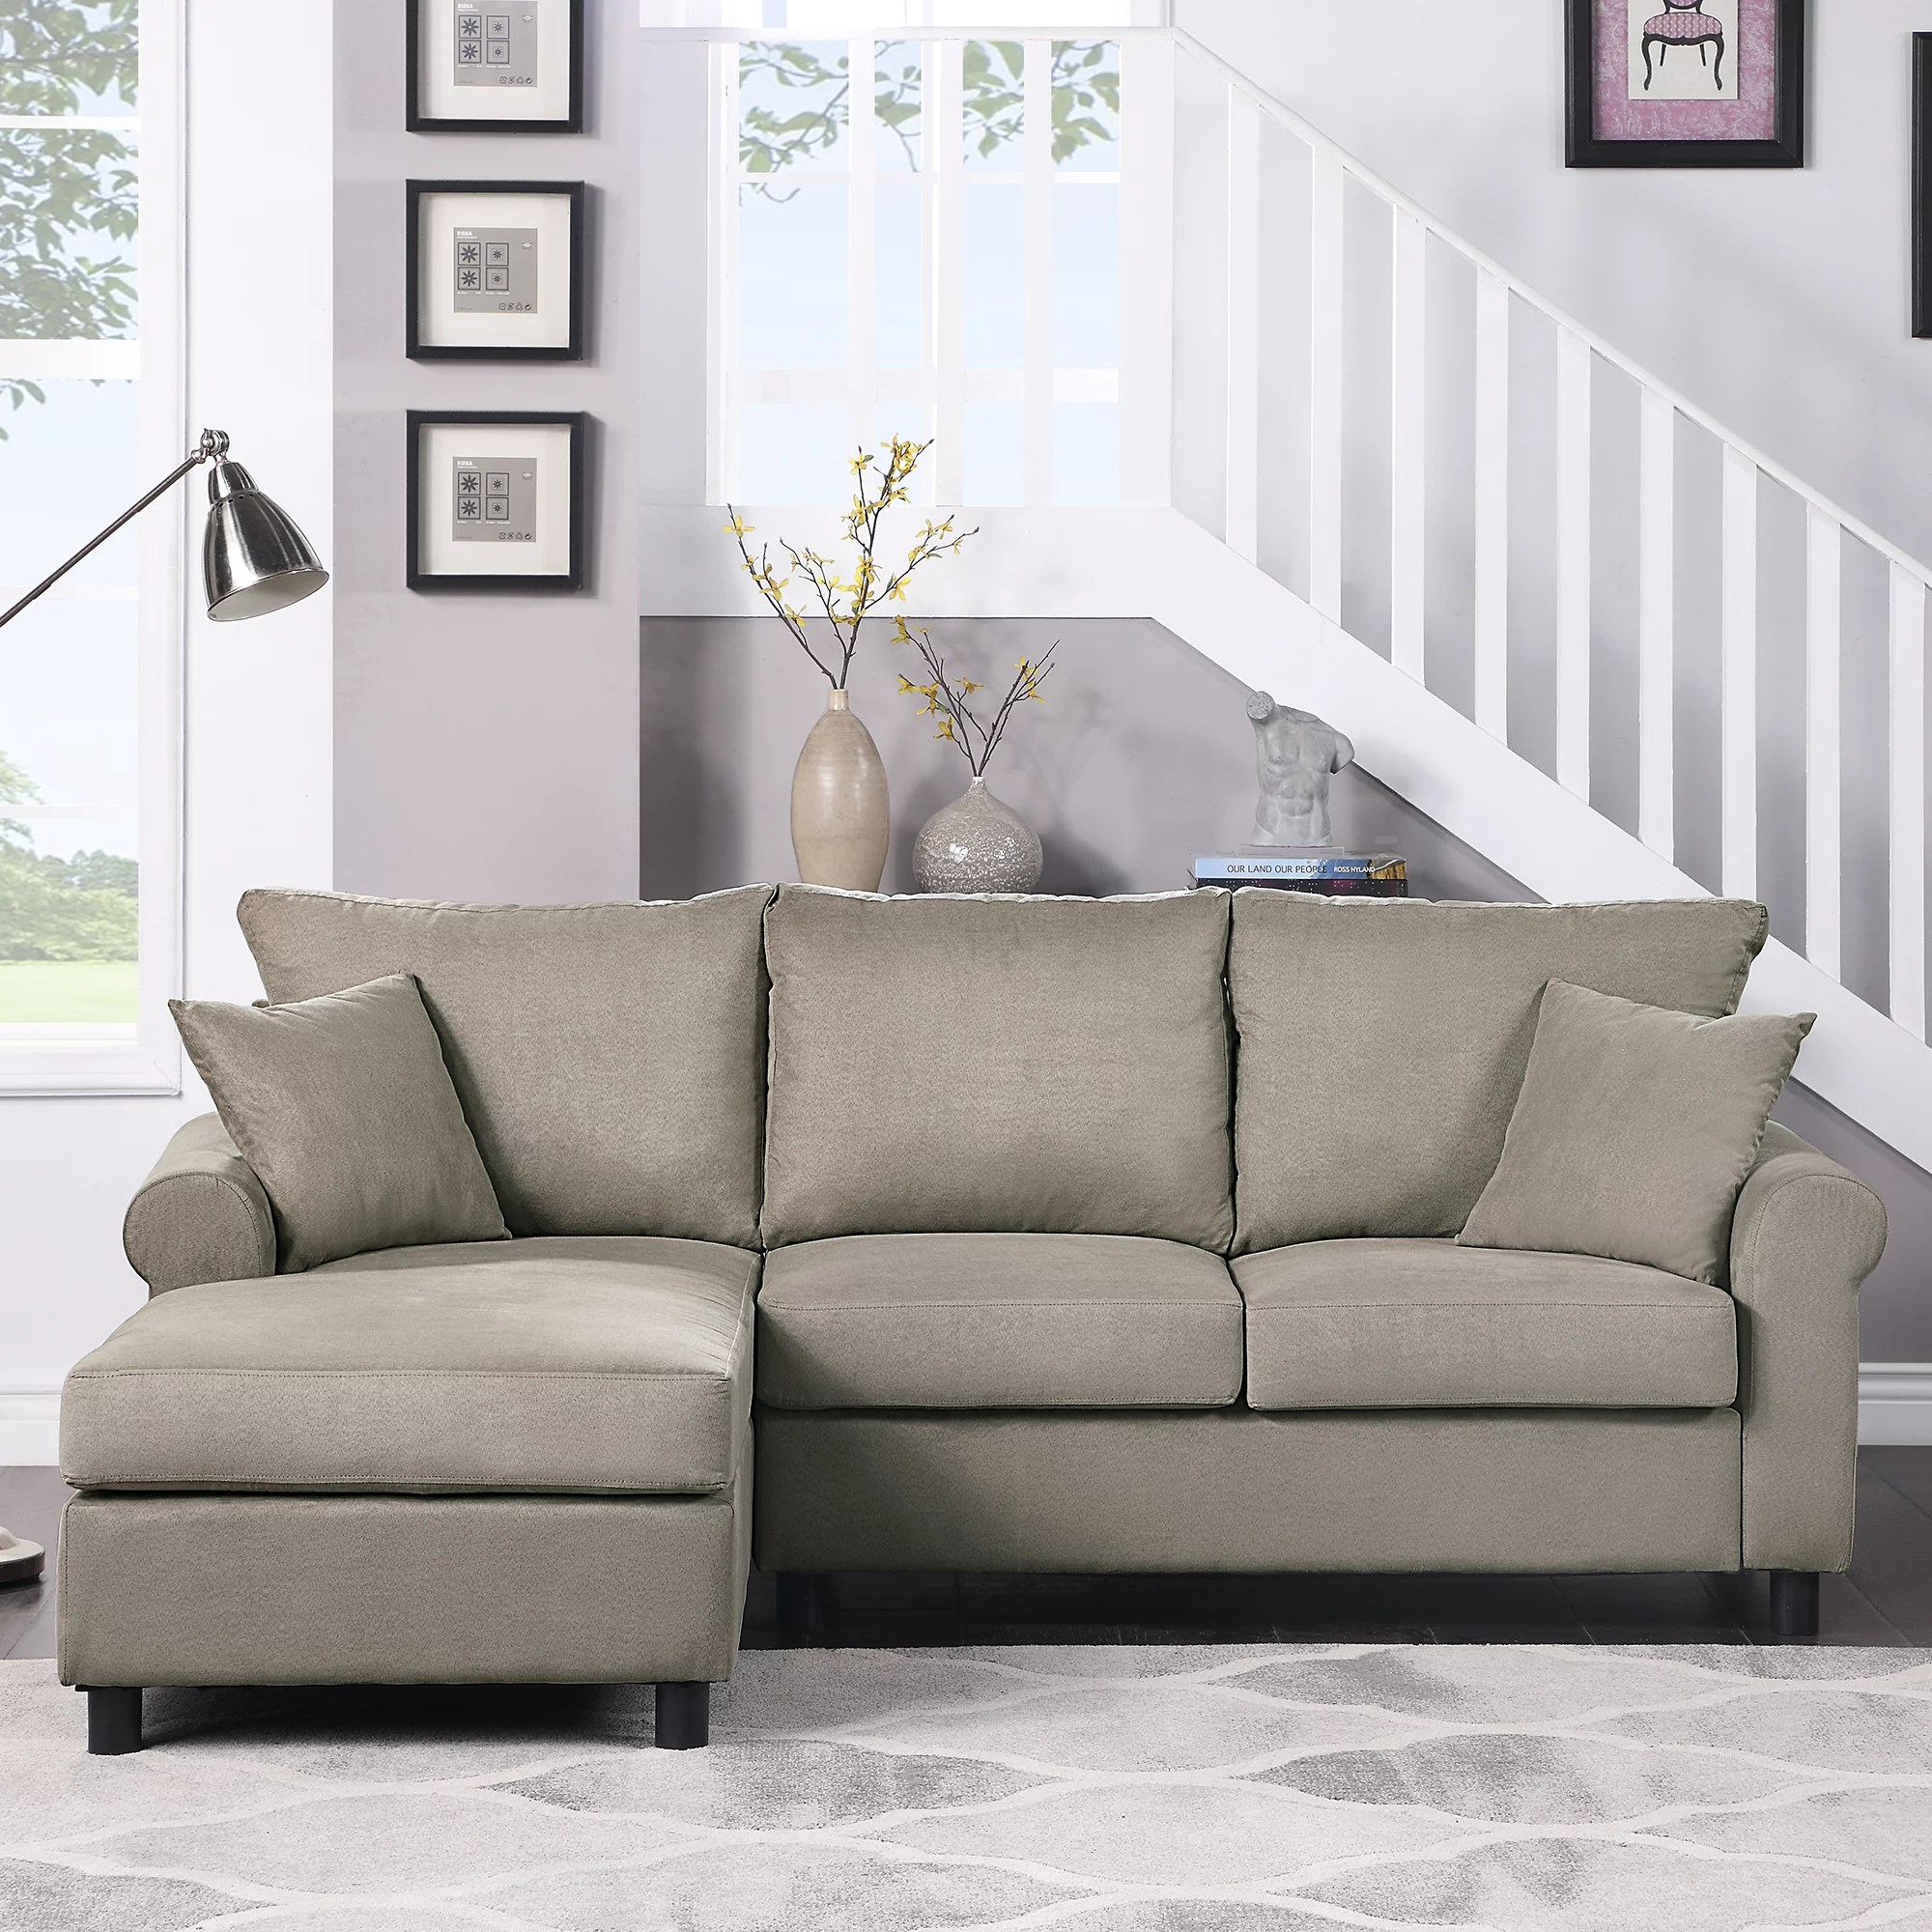 segmart mid century 2 piece sectional sofa sets on sale 35 x 85 x 61 upholstered polyester fabric sectional sofas with chaise lounge loveseat